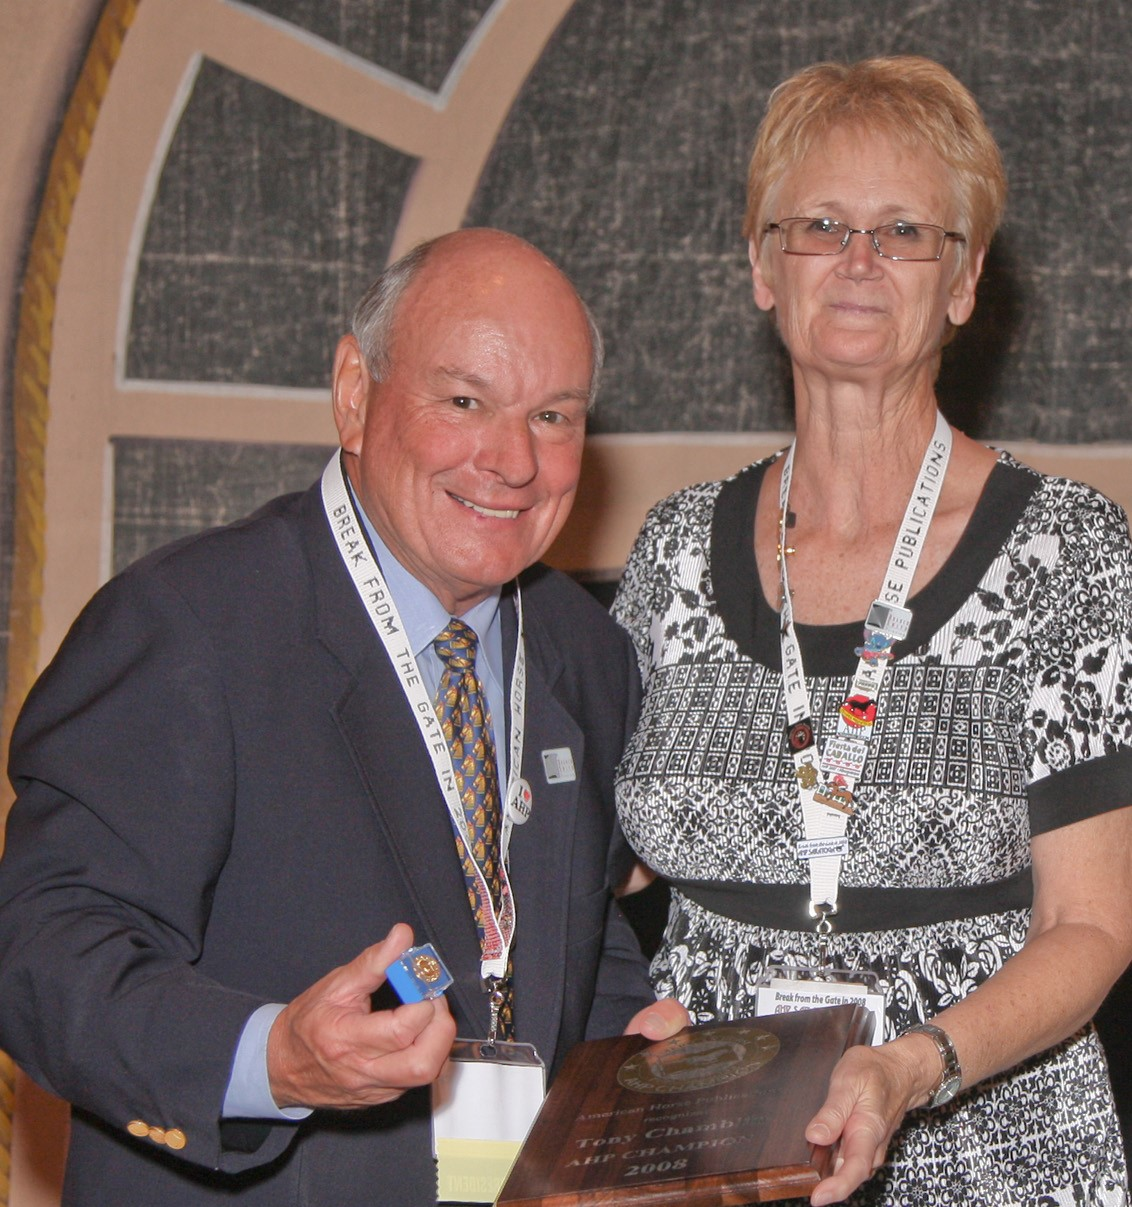 An Interview with Tony Chamblin, AHP Past President and former Executive Director